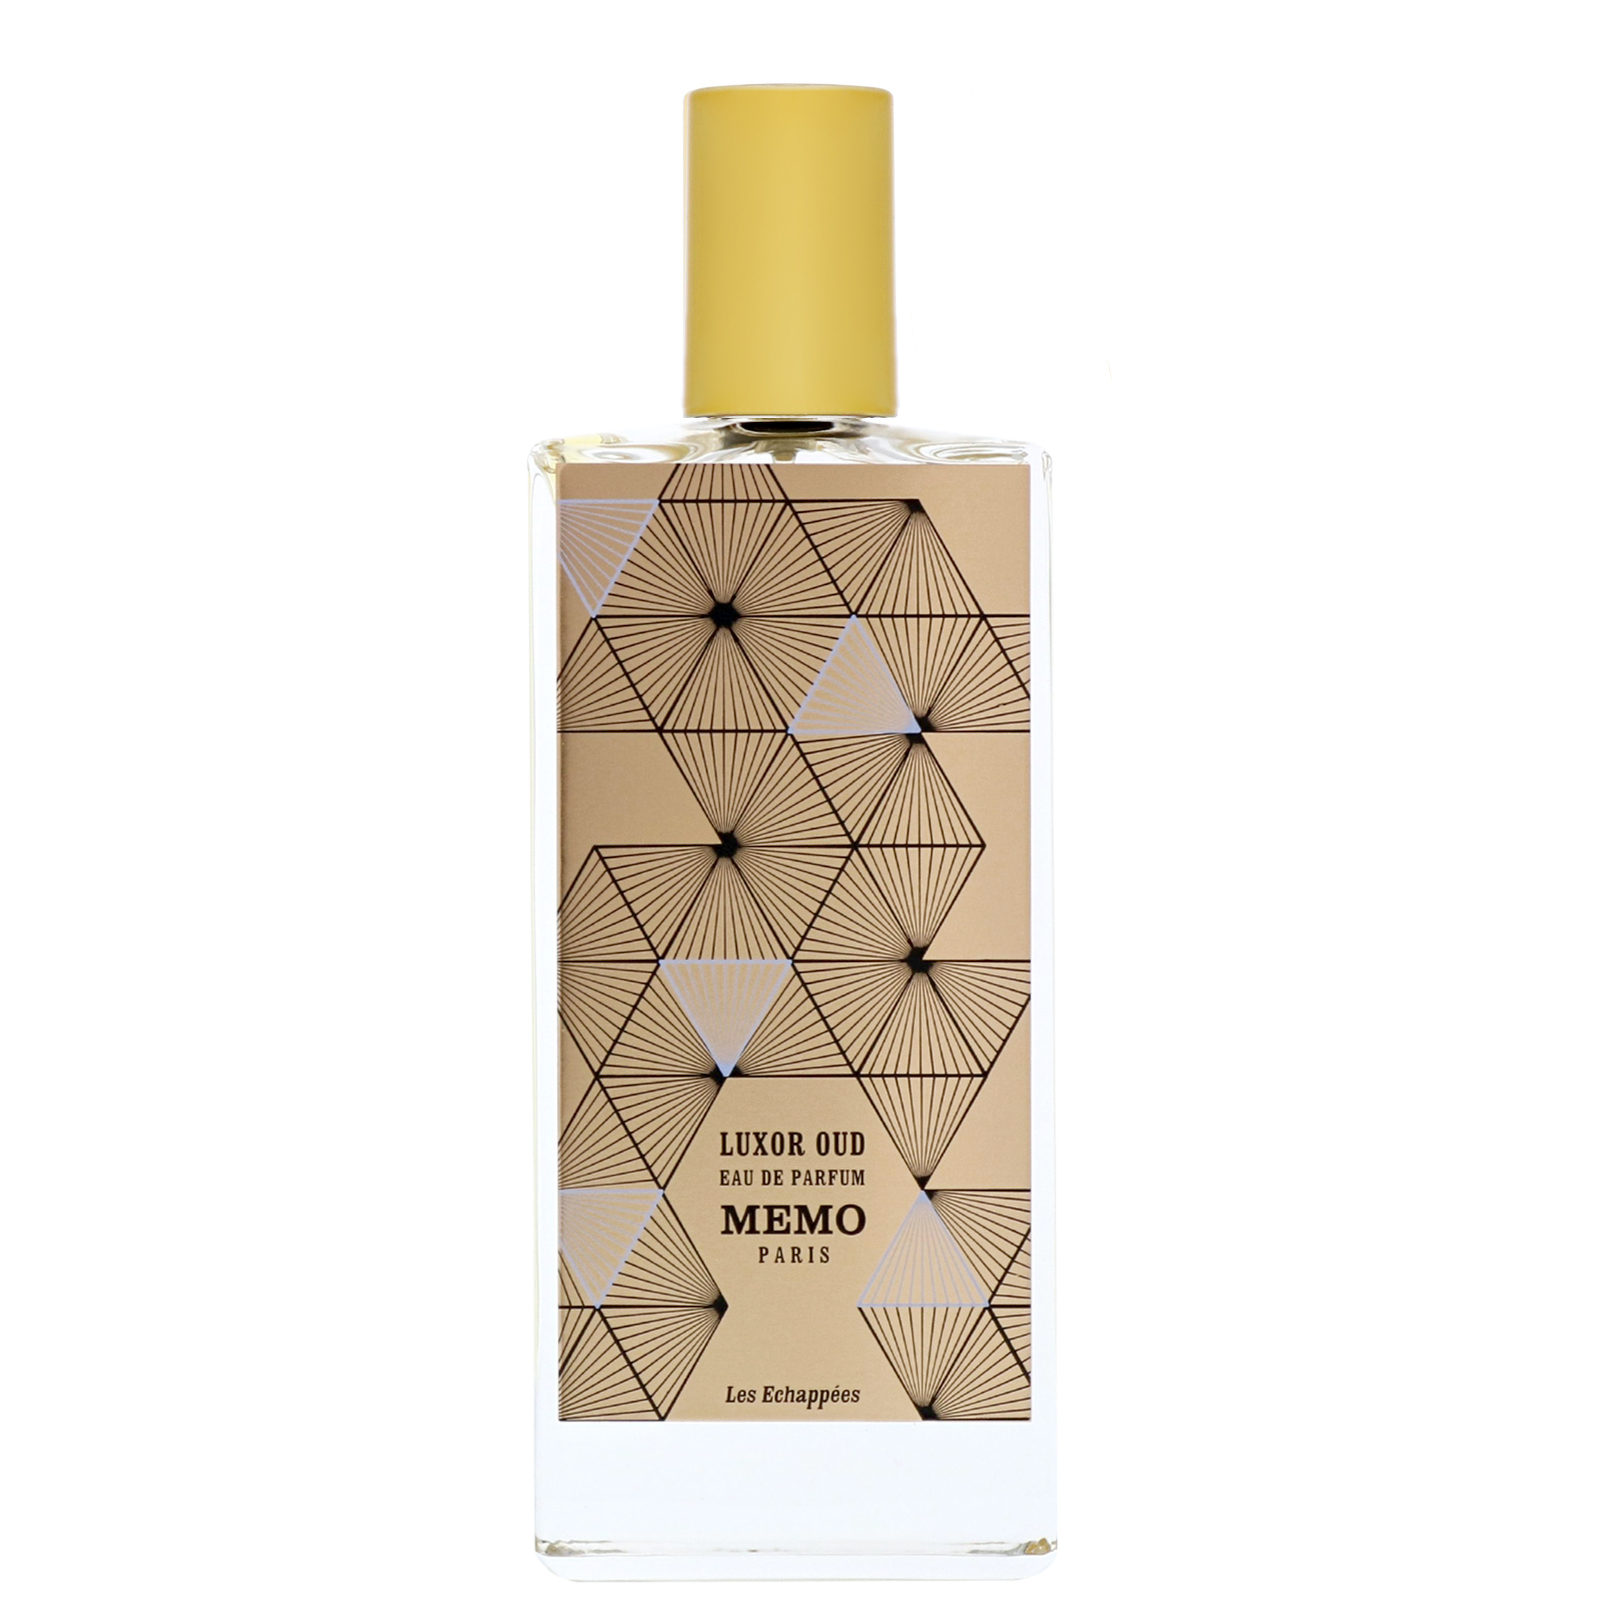 Memo Paris Luxor Oud Eau de Parfum Spray 75ml